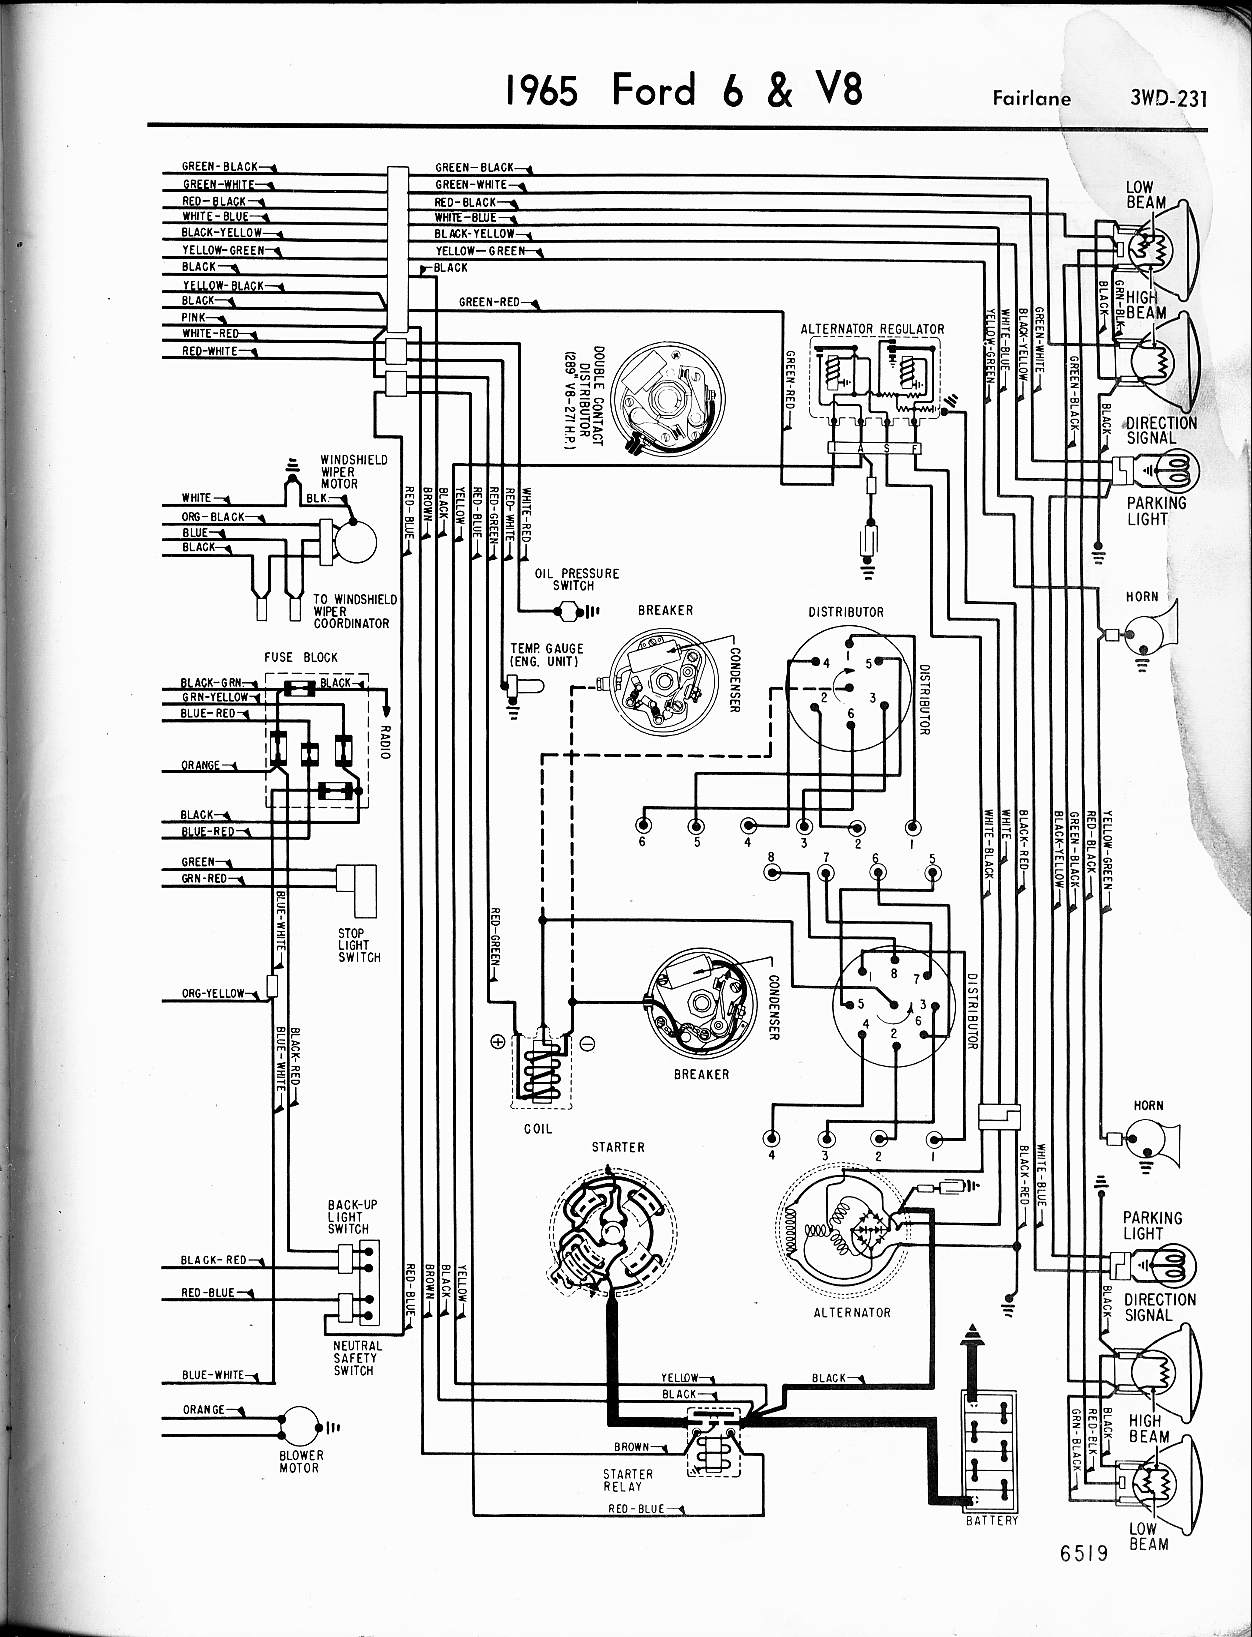 1965 ford wiring diagram schematics wiring diagrams u2022 rh seniorlivinguniversity co